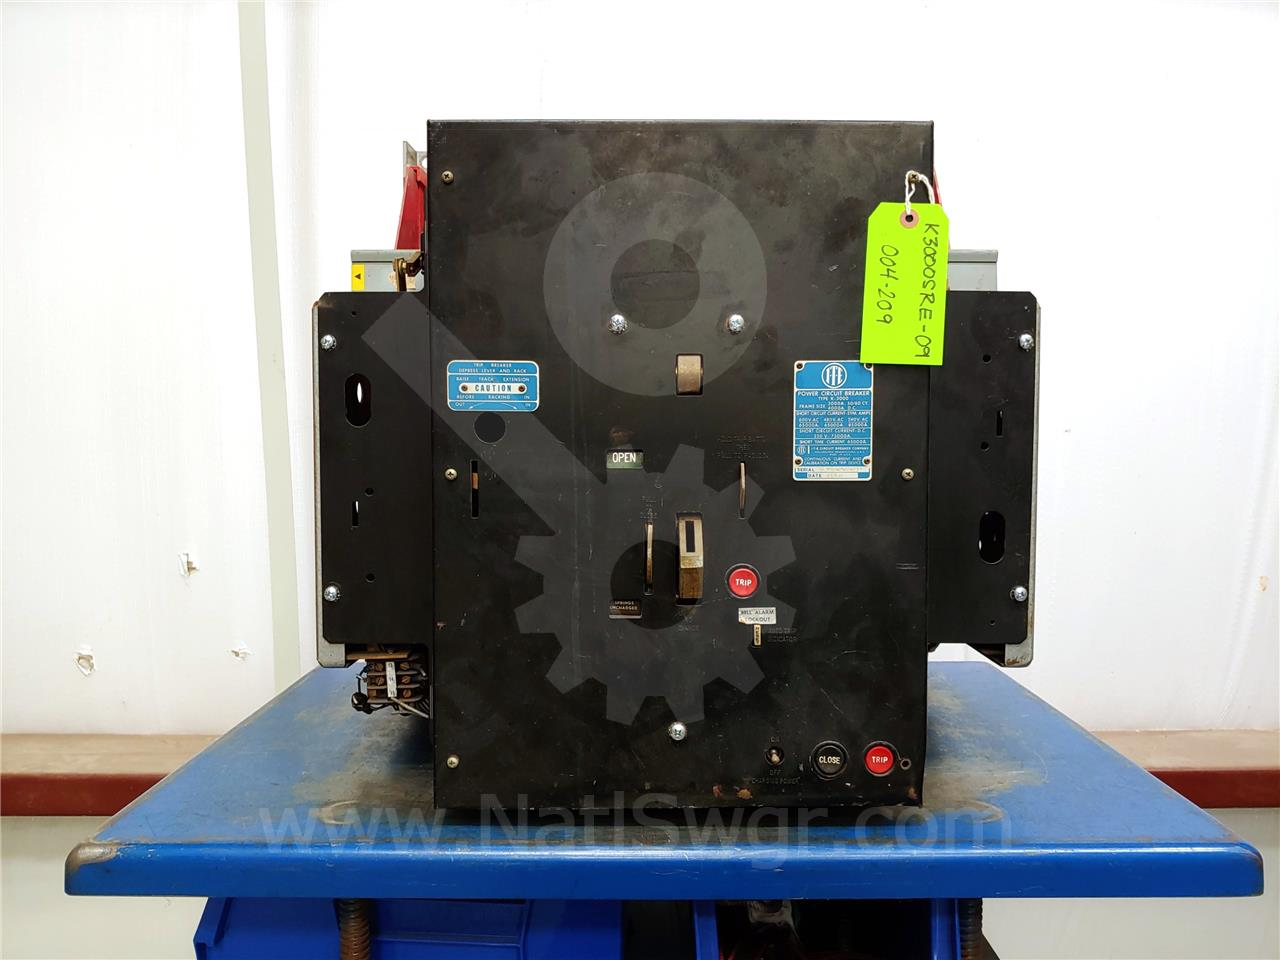 K-3000S 3000A ITE RED EO/DO PARTS UNIT